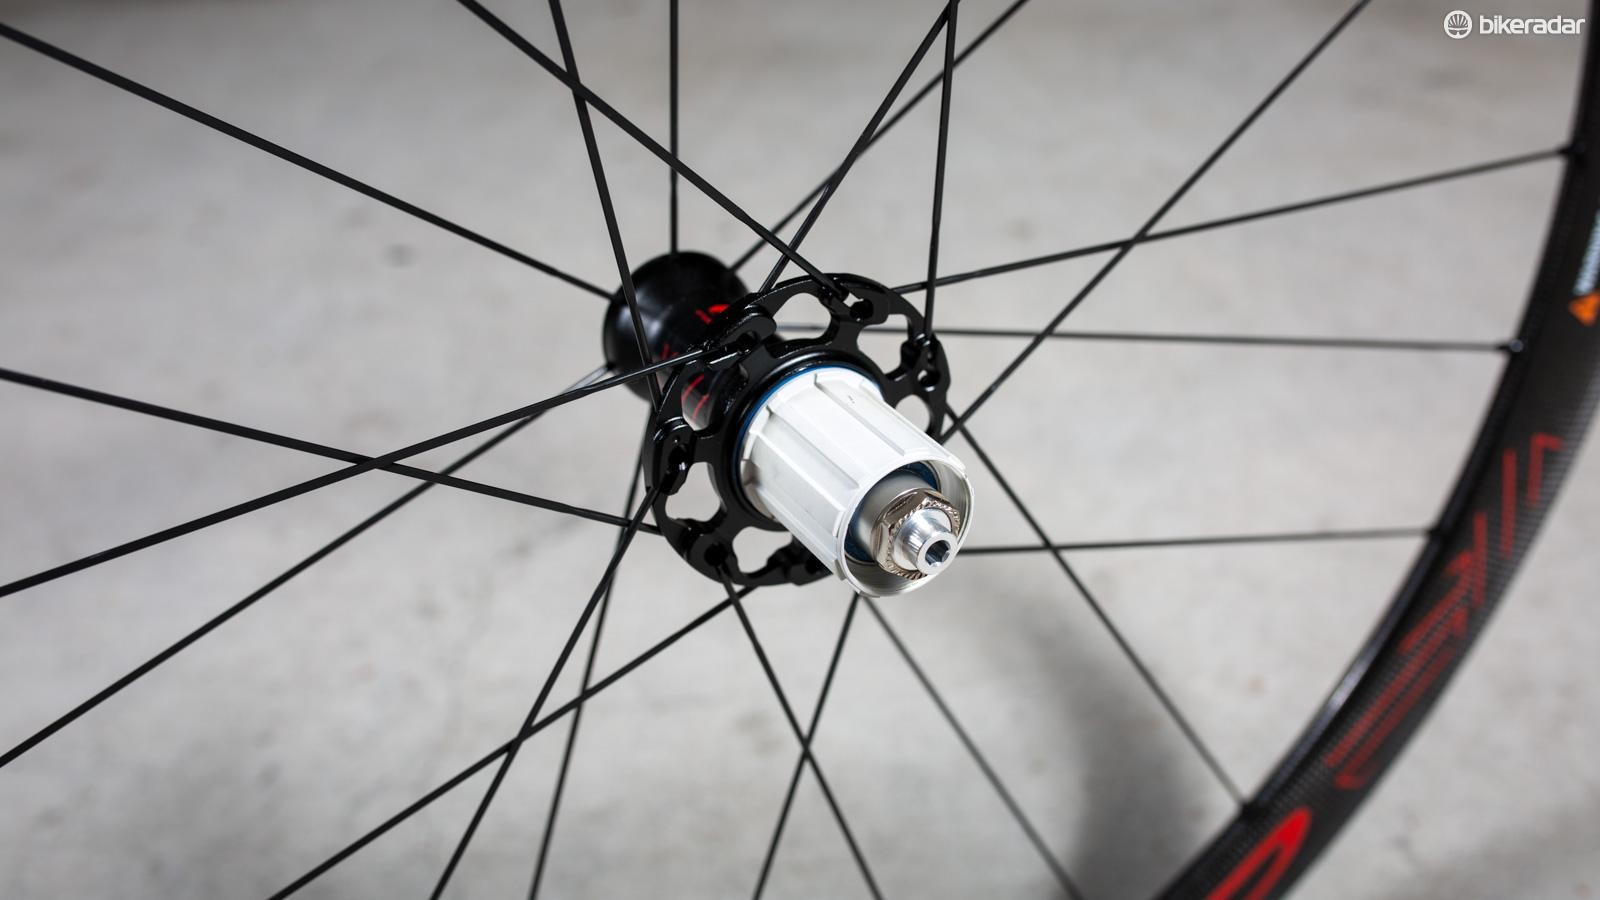 According to Fulcrum the 'Plasma' treated freehub makes the aluminium body especially hard and resistant to surface abrasion and wear. It says it also allowed the thickness of materials to be reduced to a minimum, achieving advantages of lighter weight while maintaining lifespan and reliability